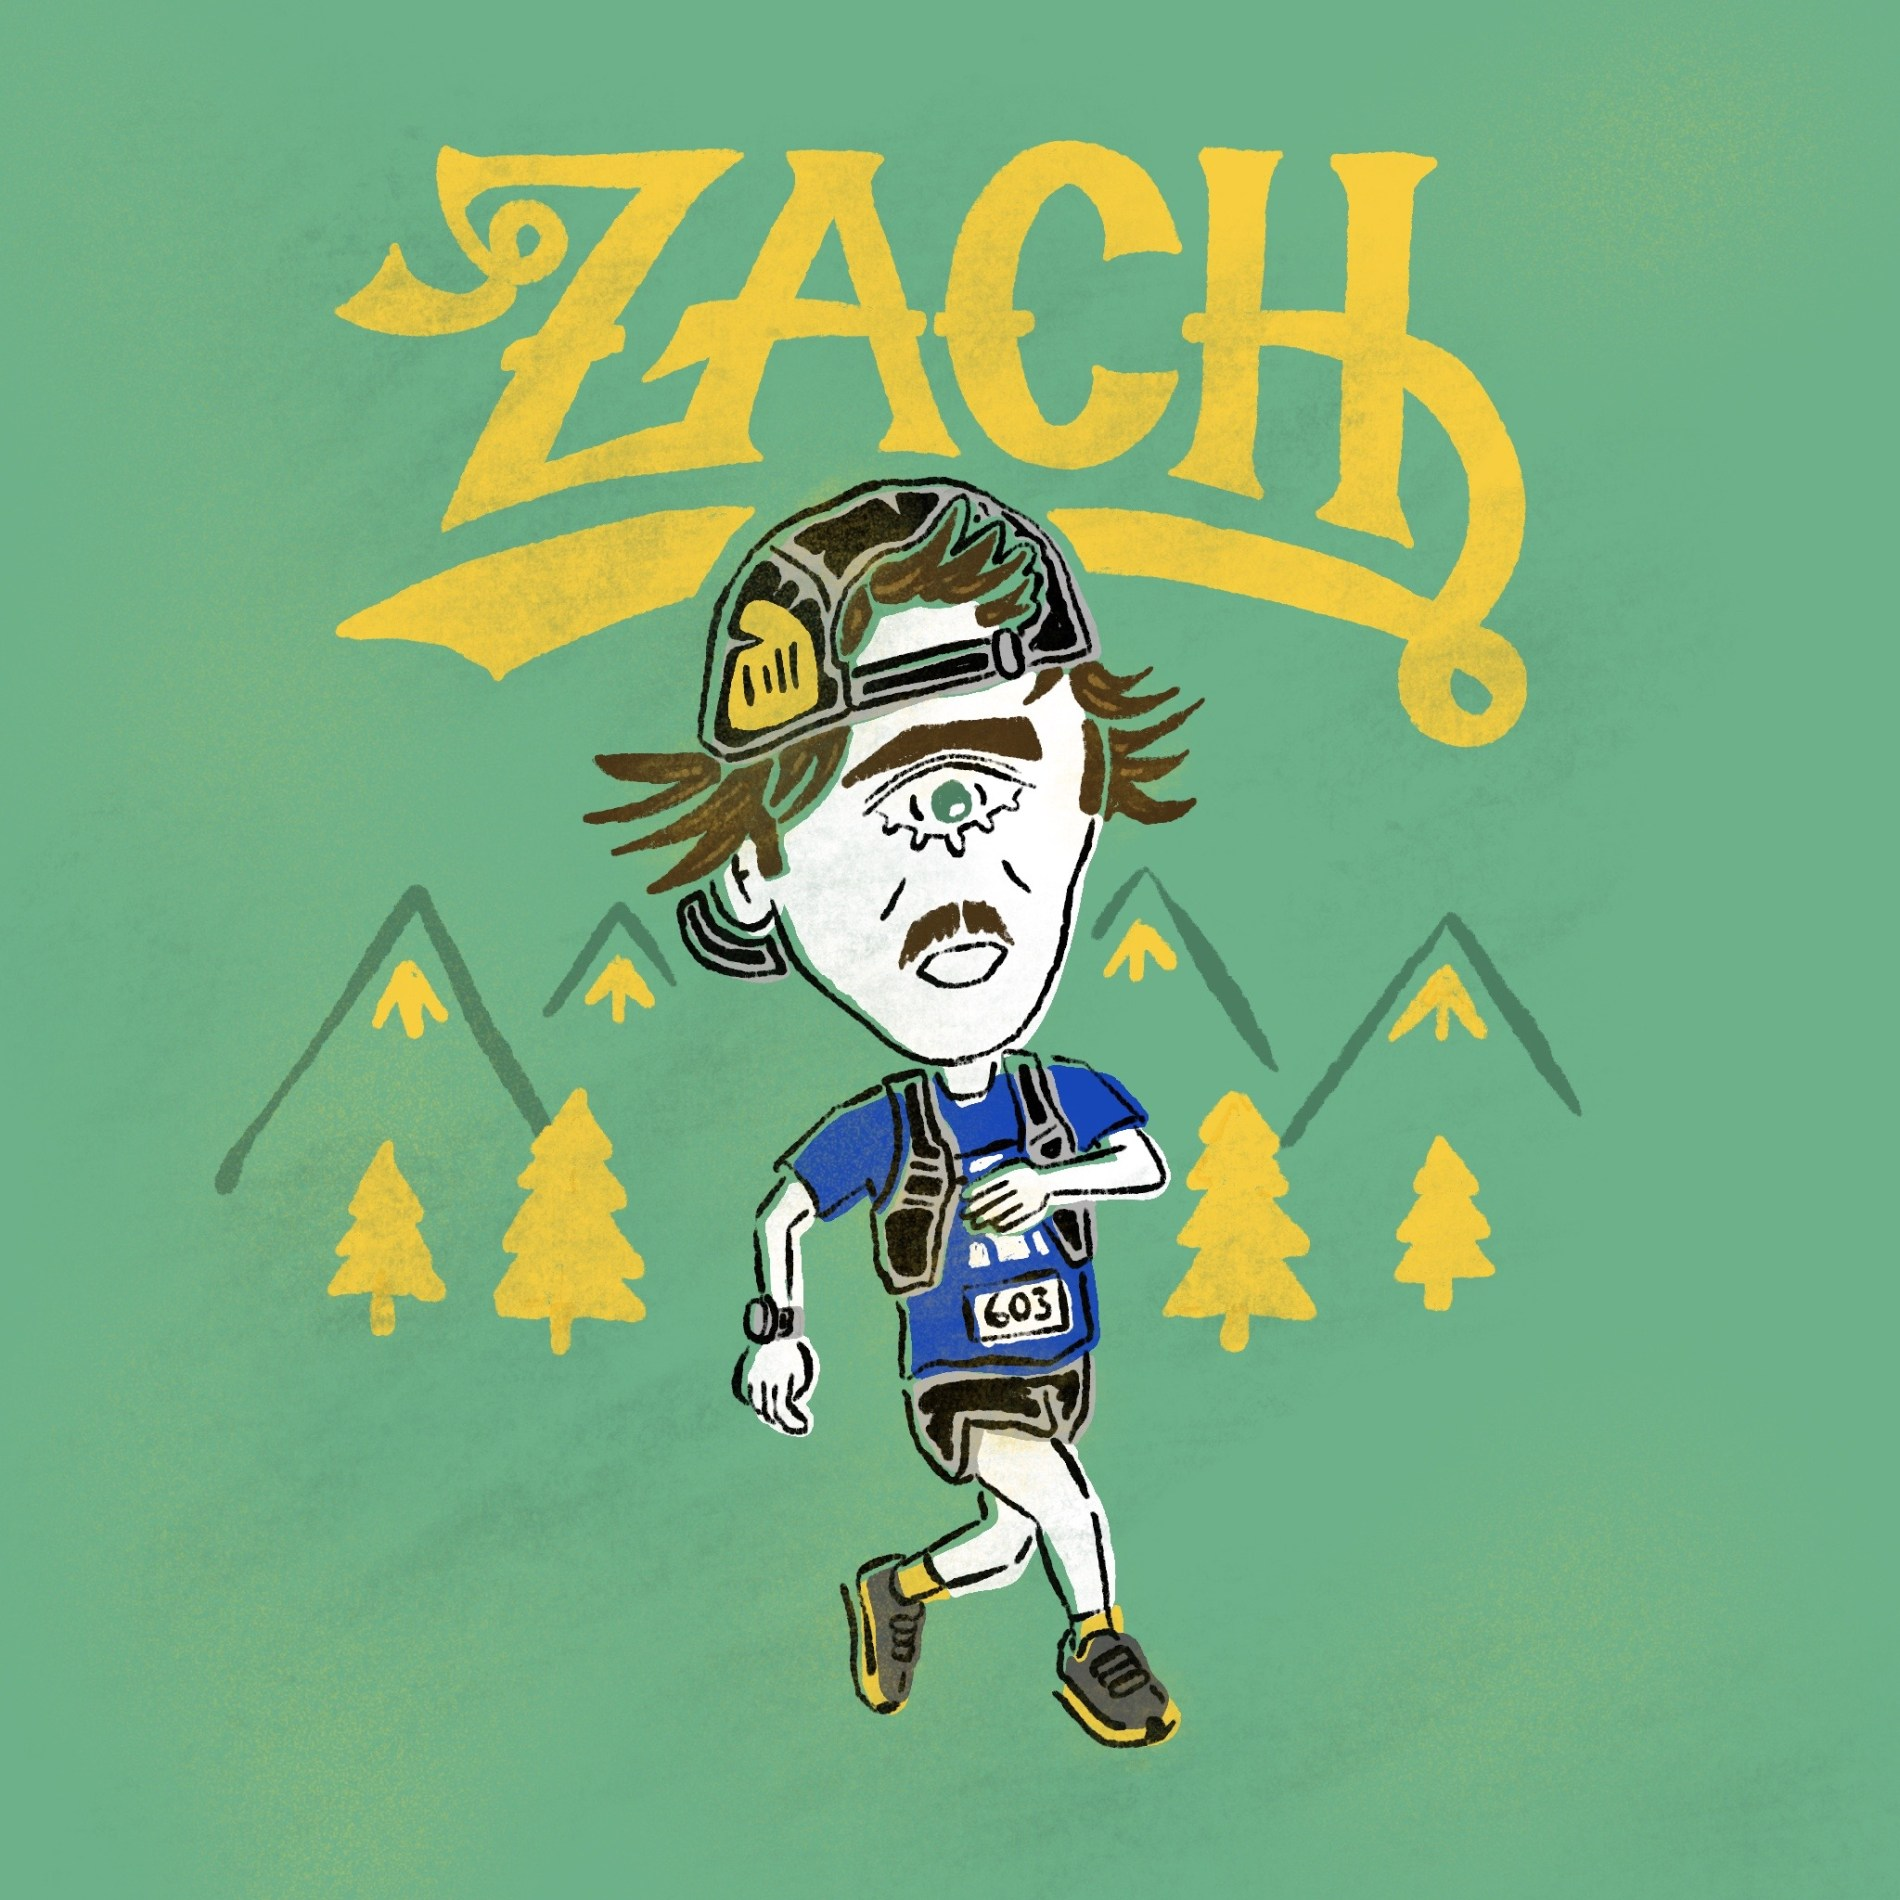 flowhynot-i-am-illustrailer-florent-trailhunters-zach-miller